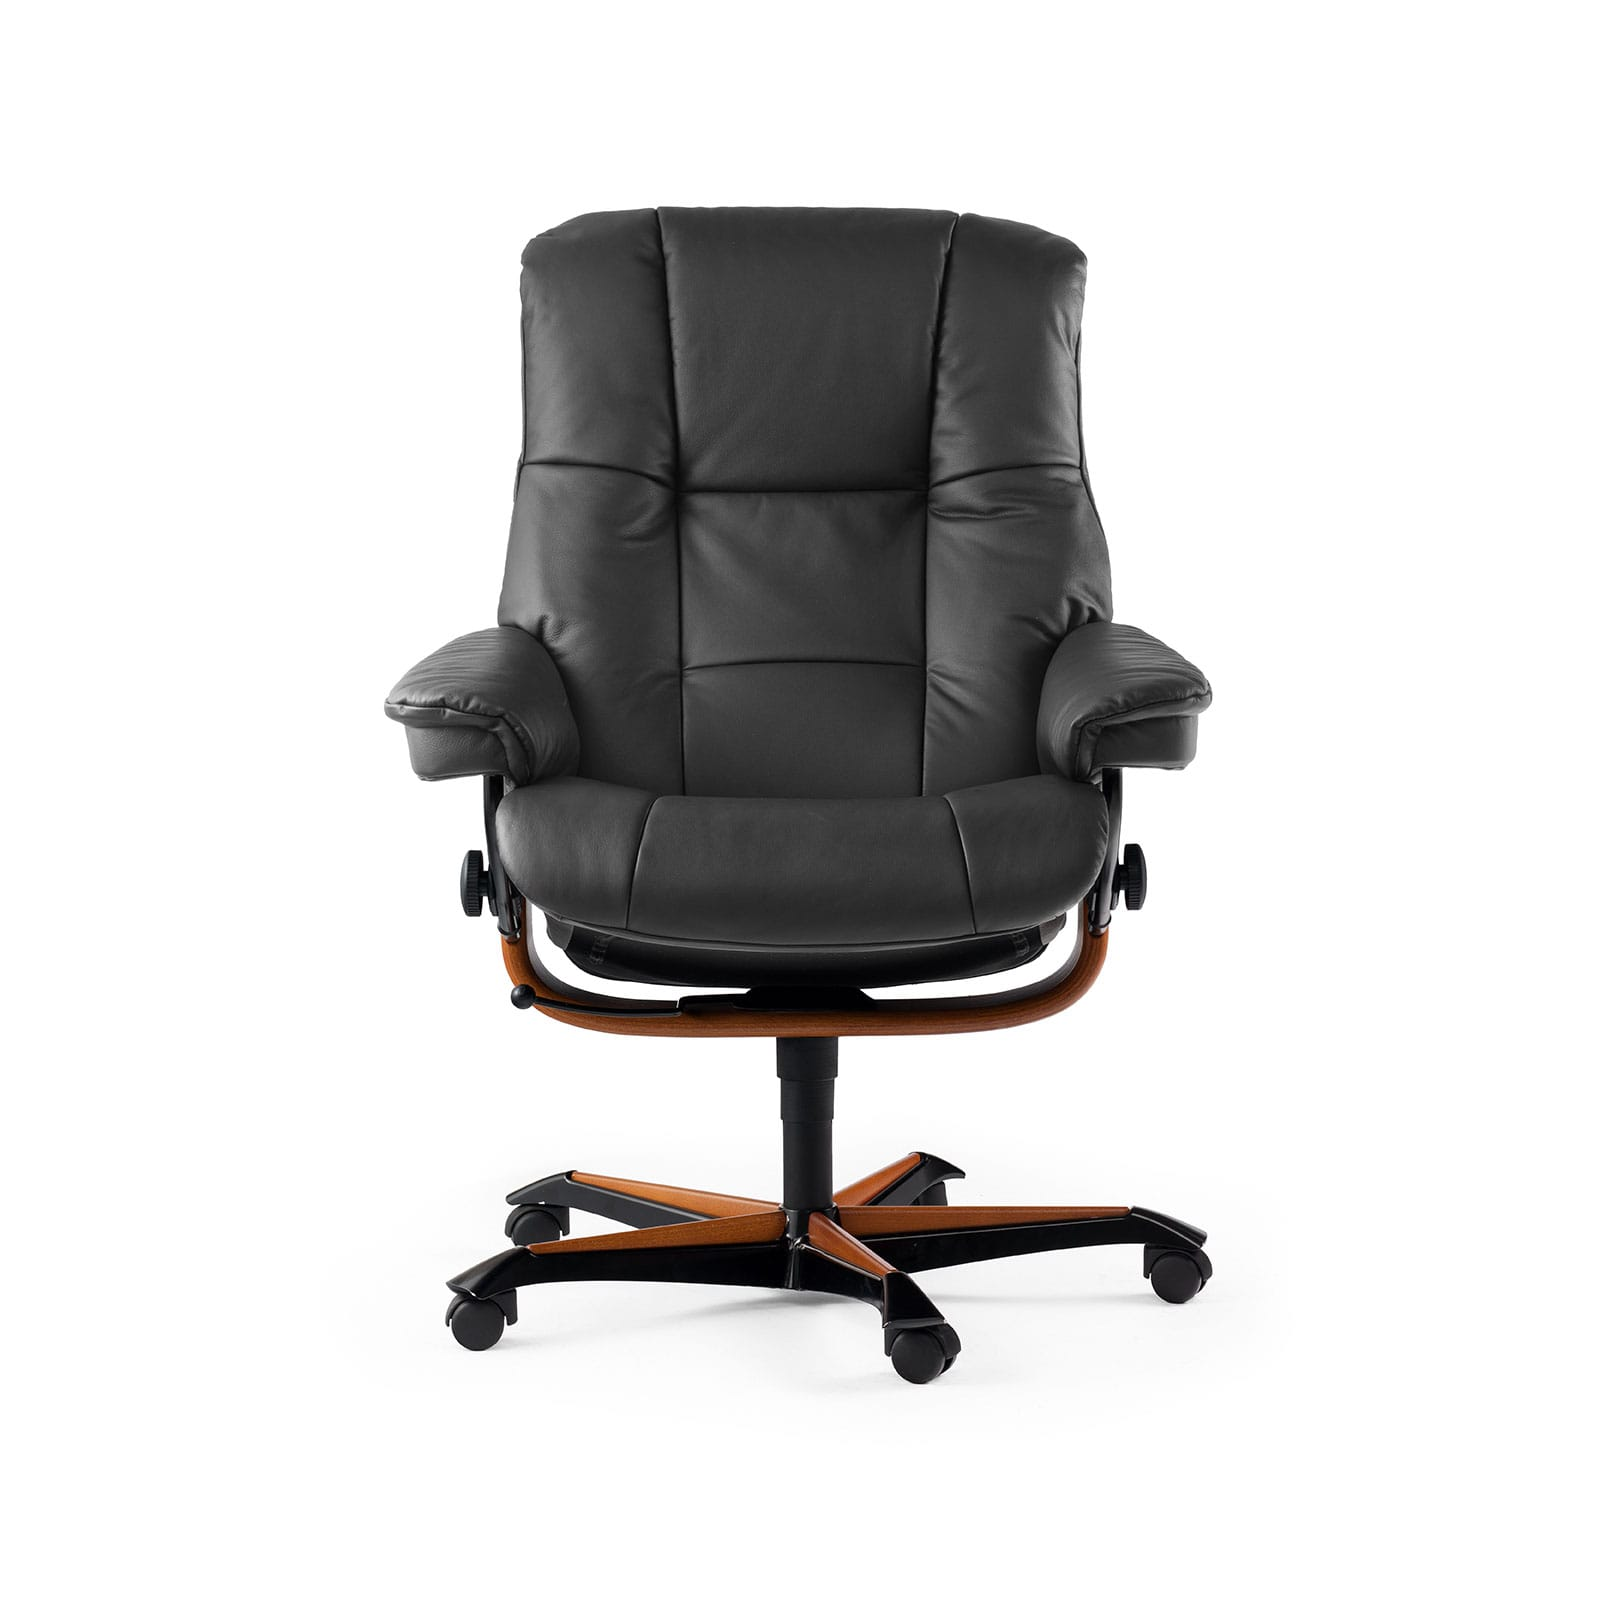 Stressless Lederfarben Stressless Sessel Mayfair Home Office Leder Paloma Rock